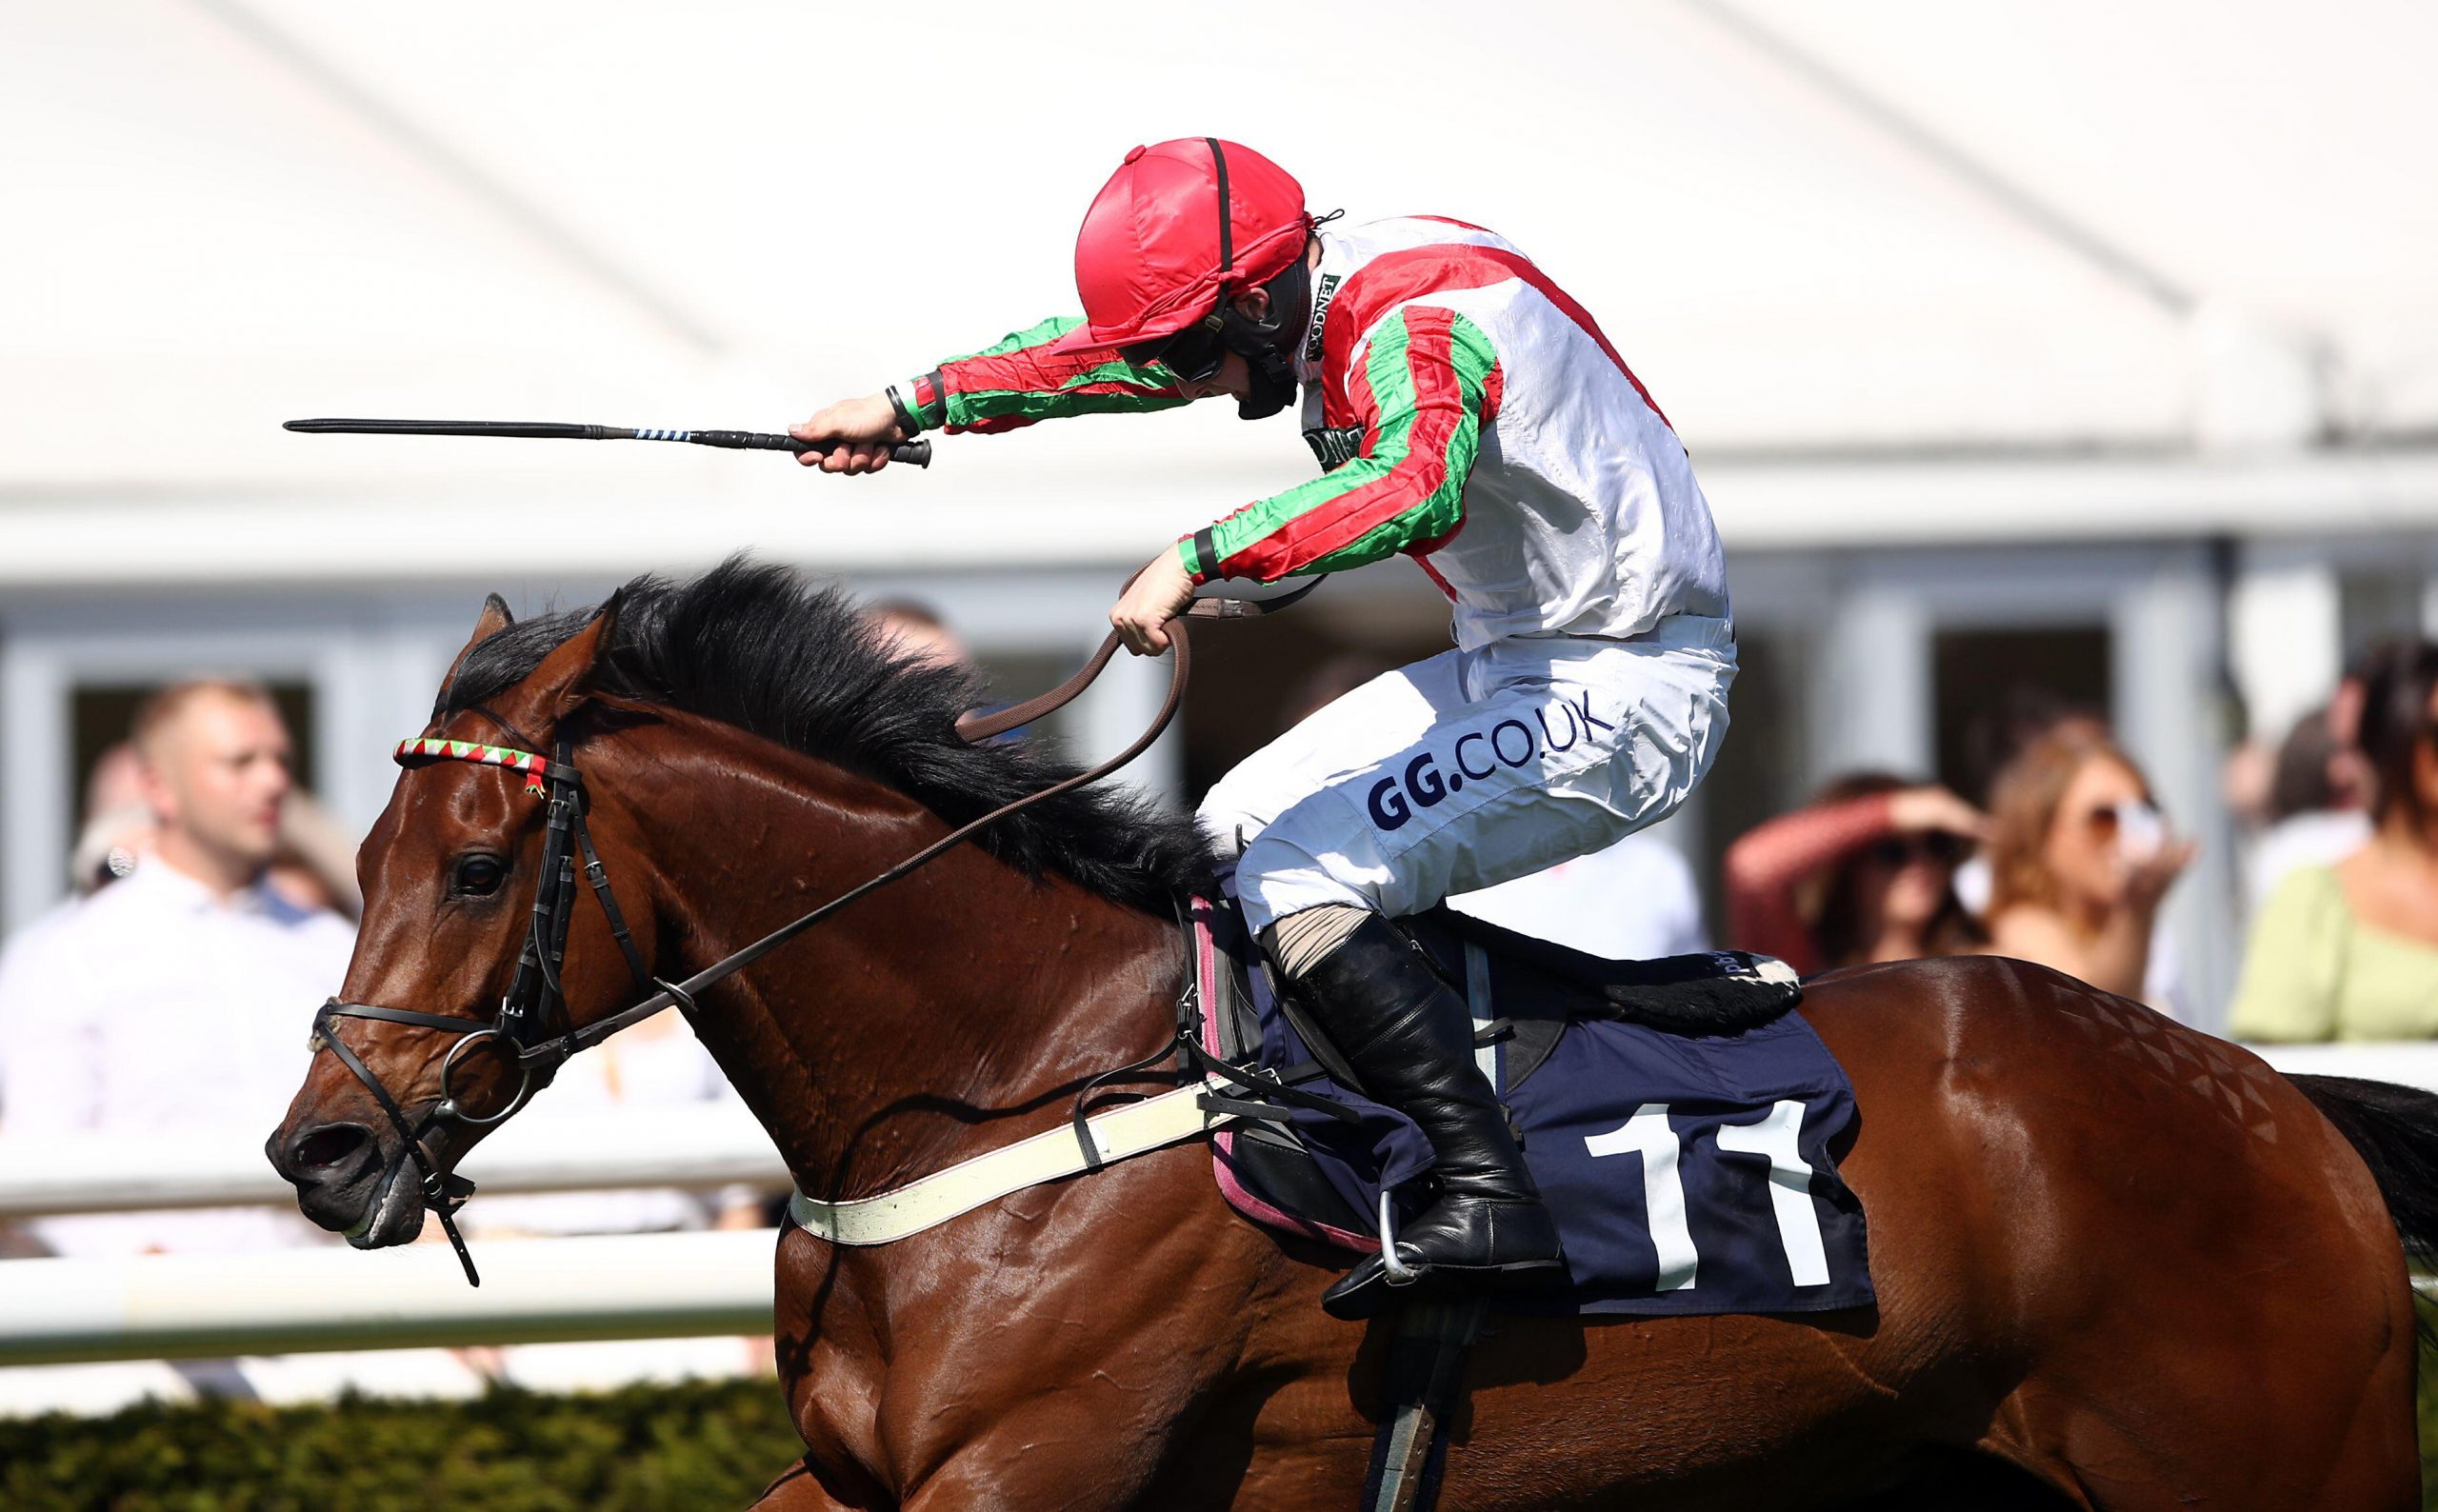 2FYX691 Francky Du Berlais ridden by jockey Sean Bowen on their way to winning the Clarke Chase at Uttoxeter Racecourse. Picture date: Sunday May 30, 2021.